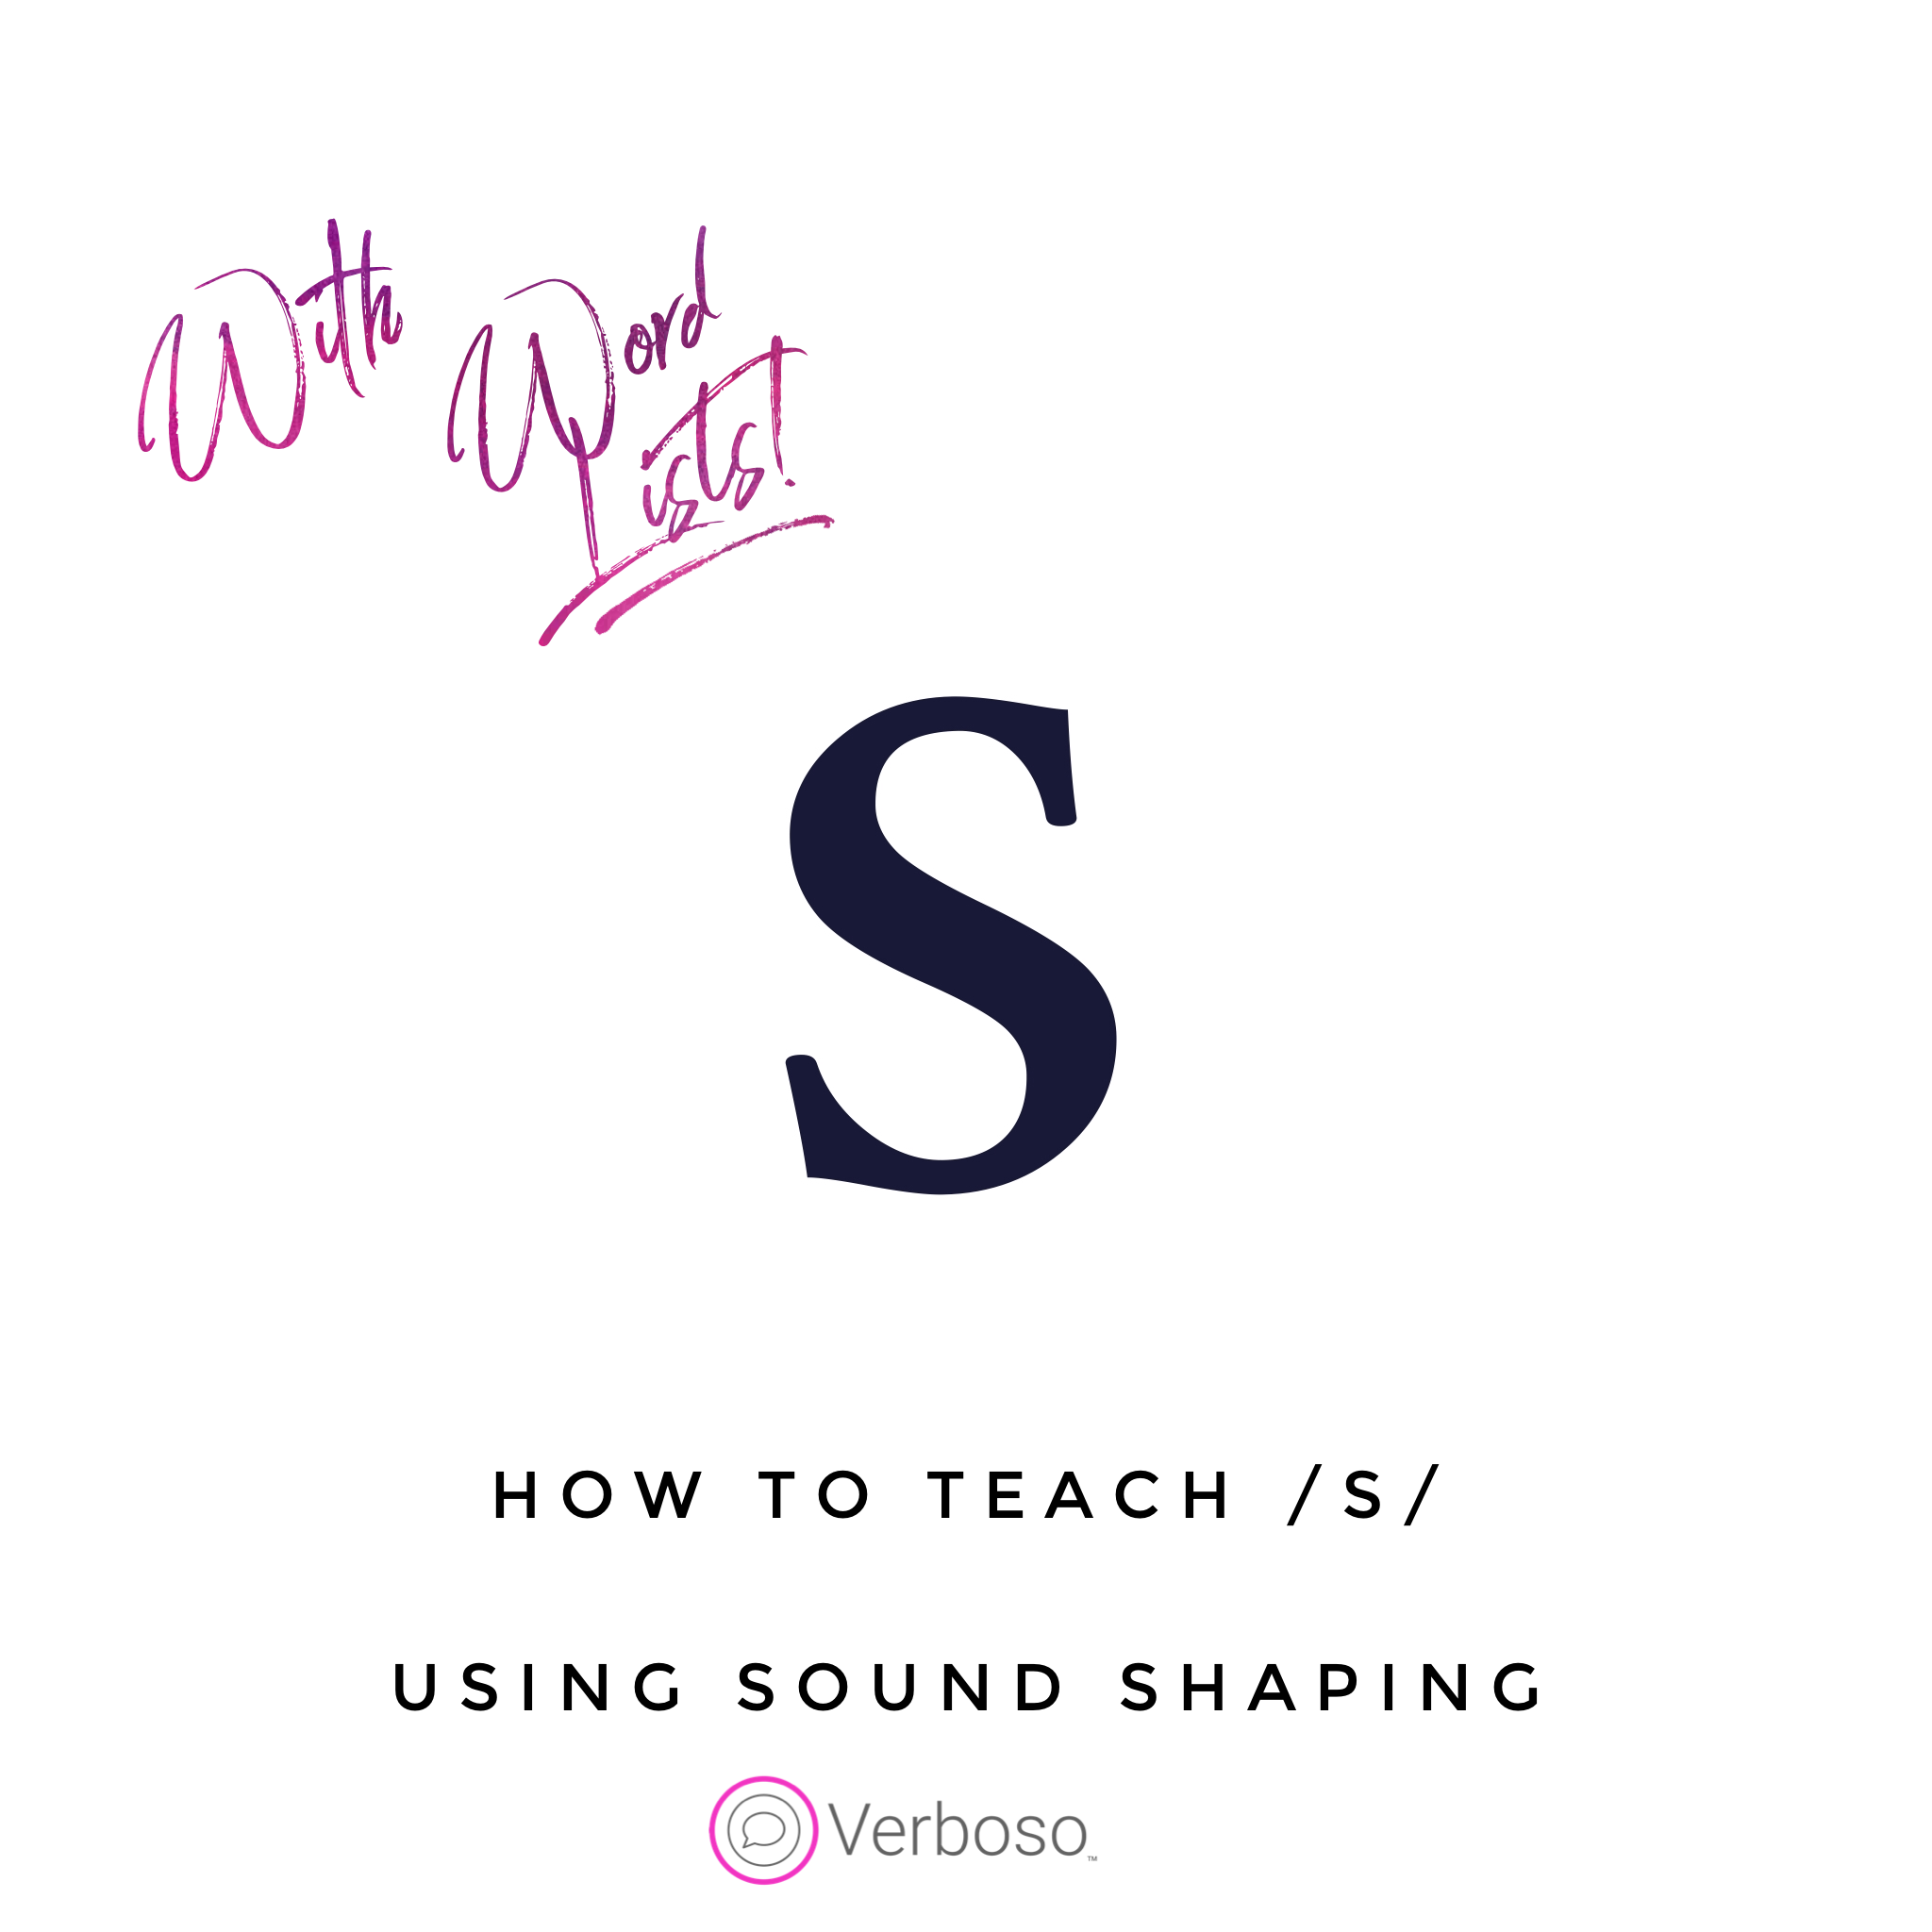 How to Teach /s/ Using Sound Shaping From /t/